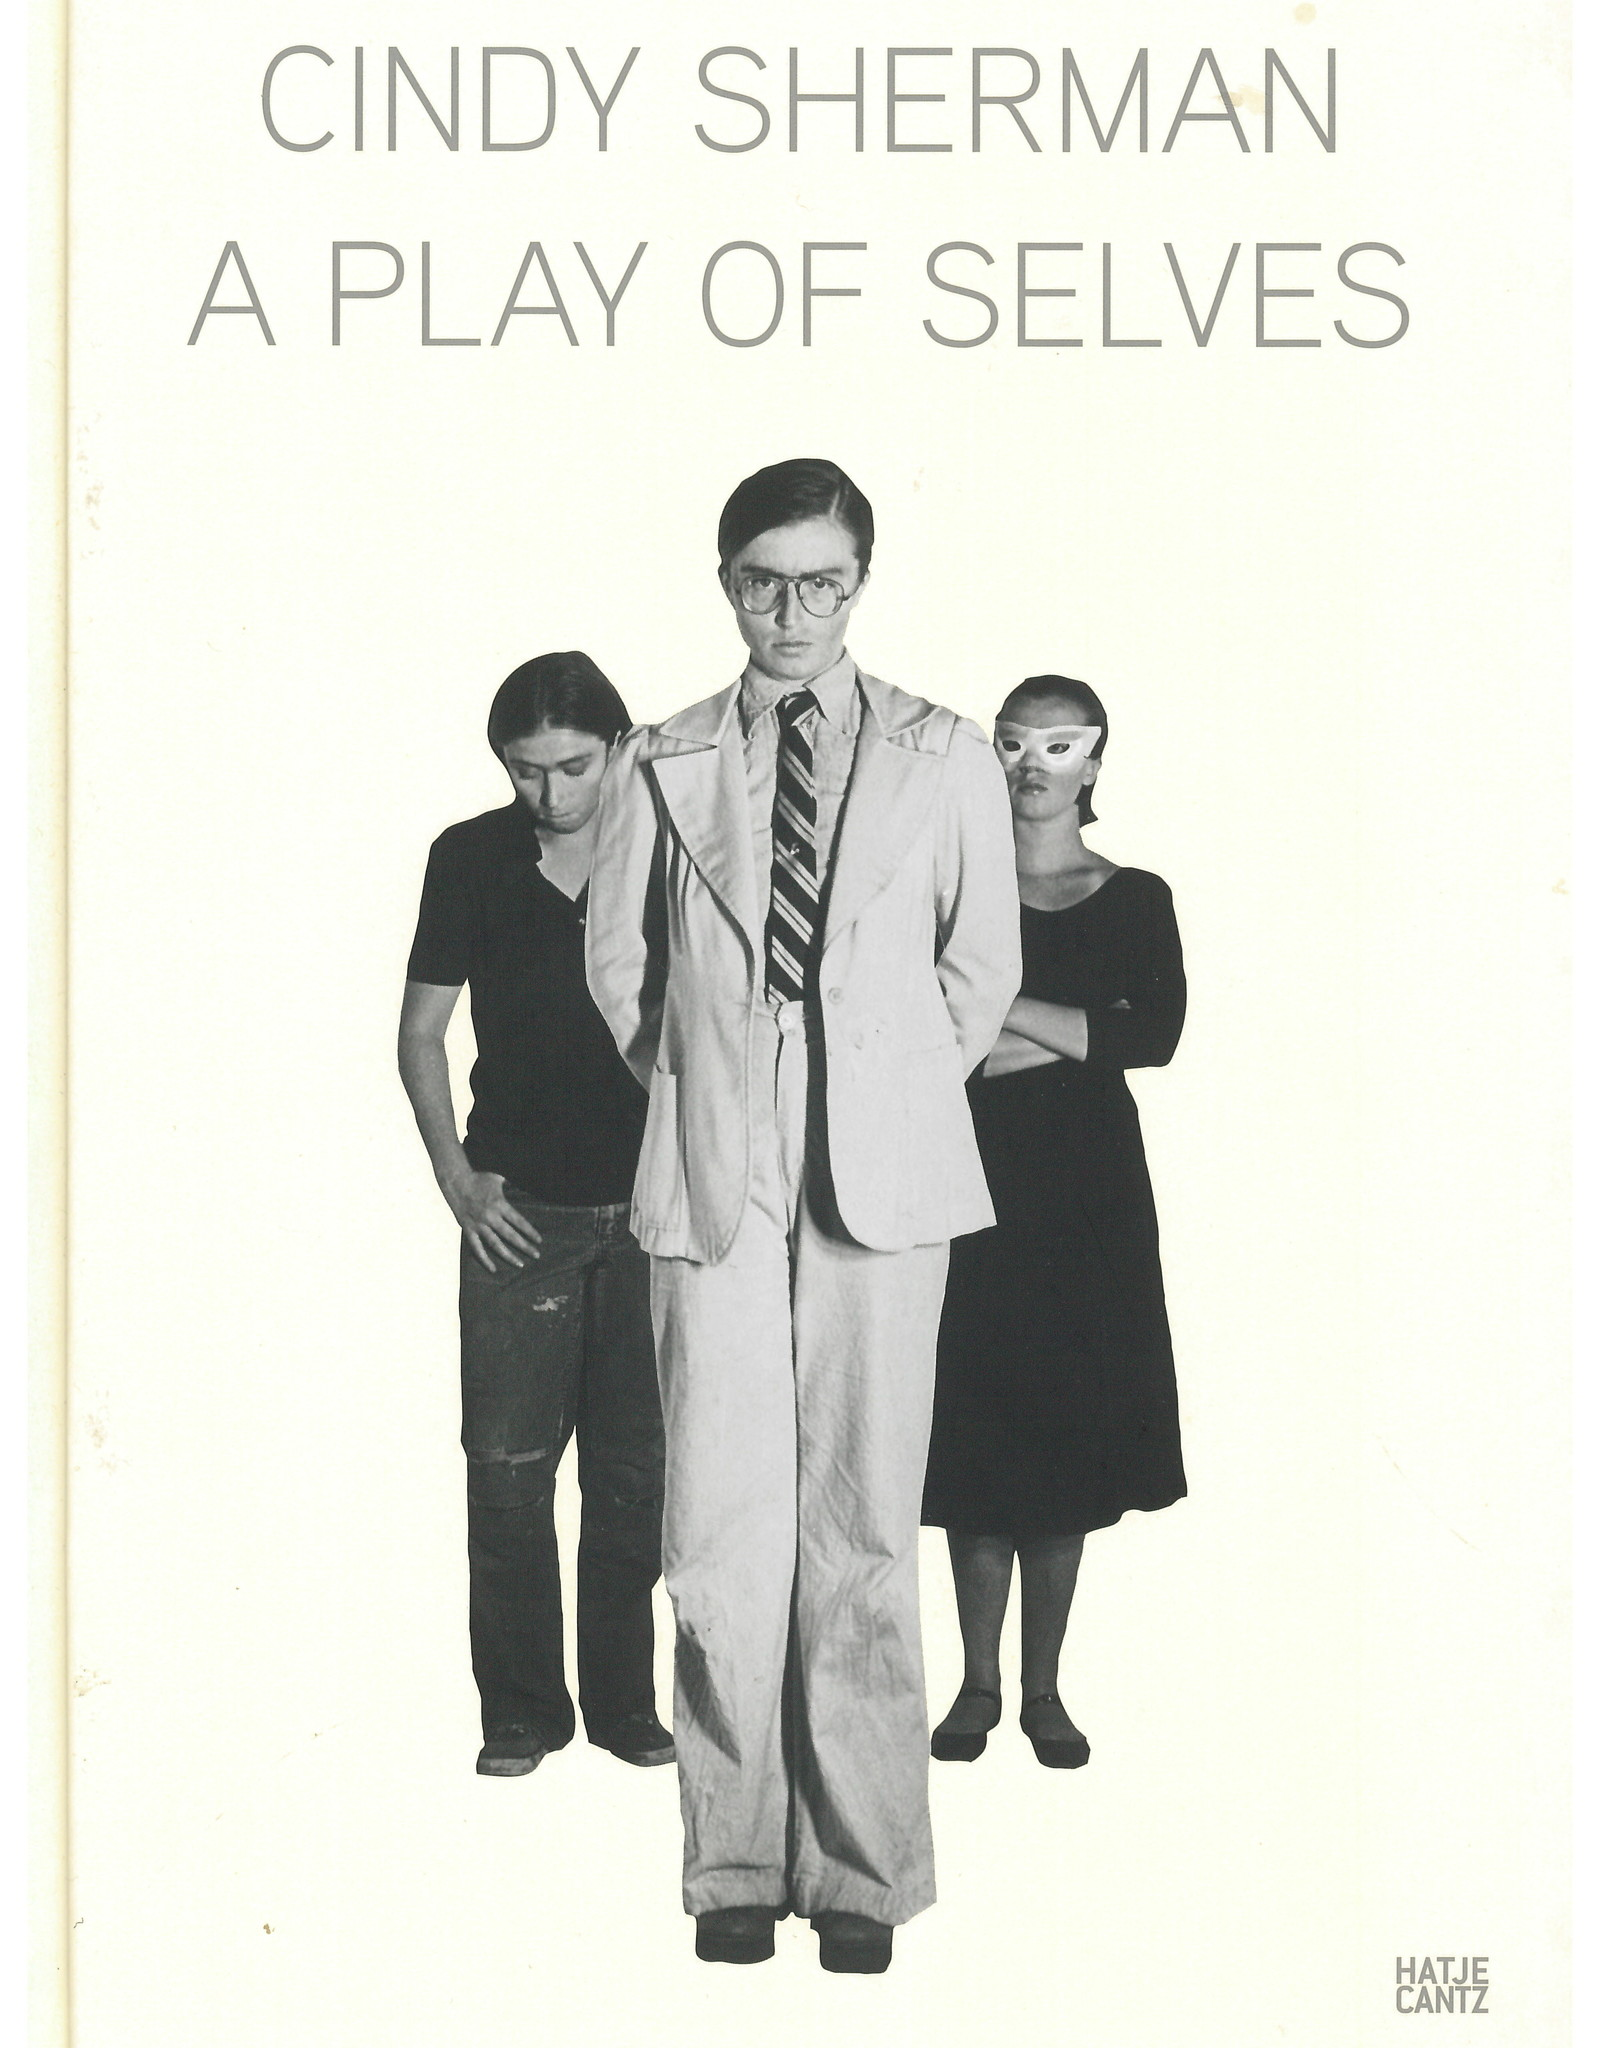 A Play of Selves / Cindy Sherman